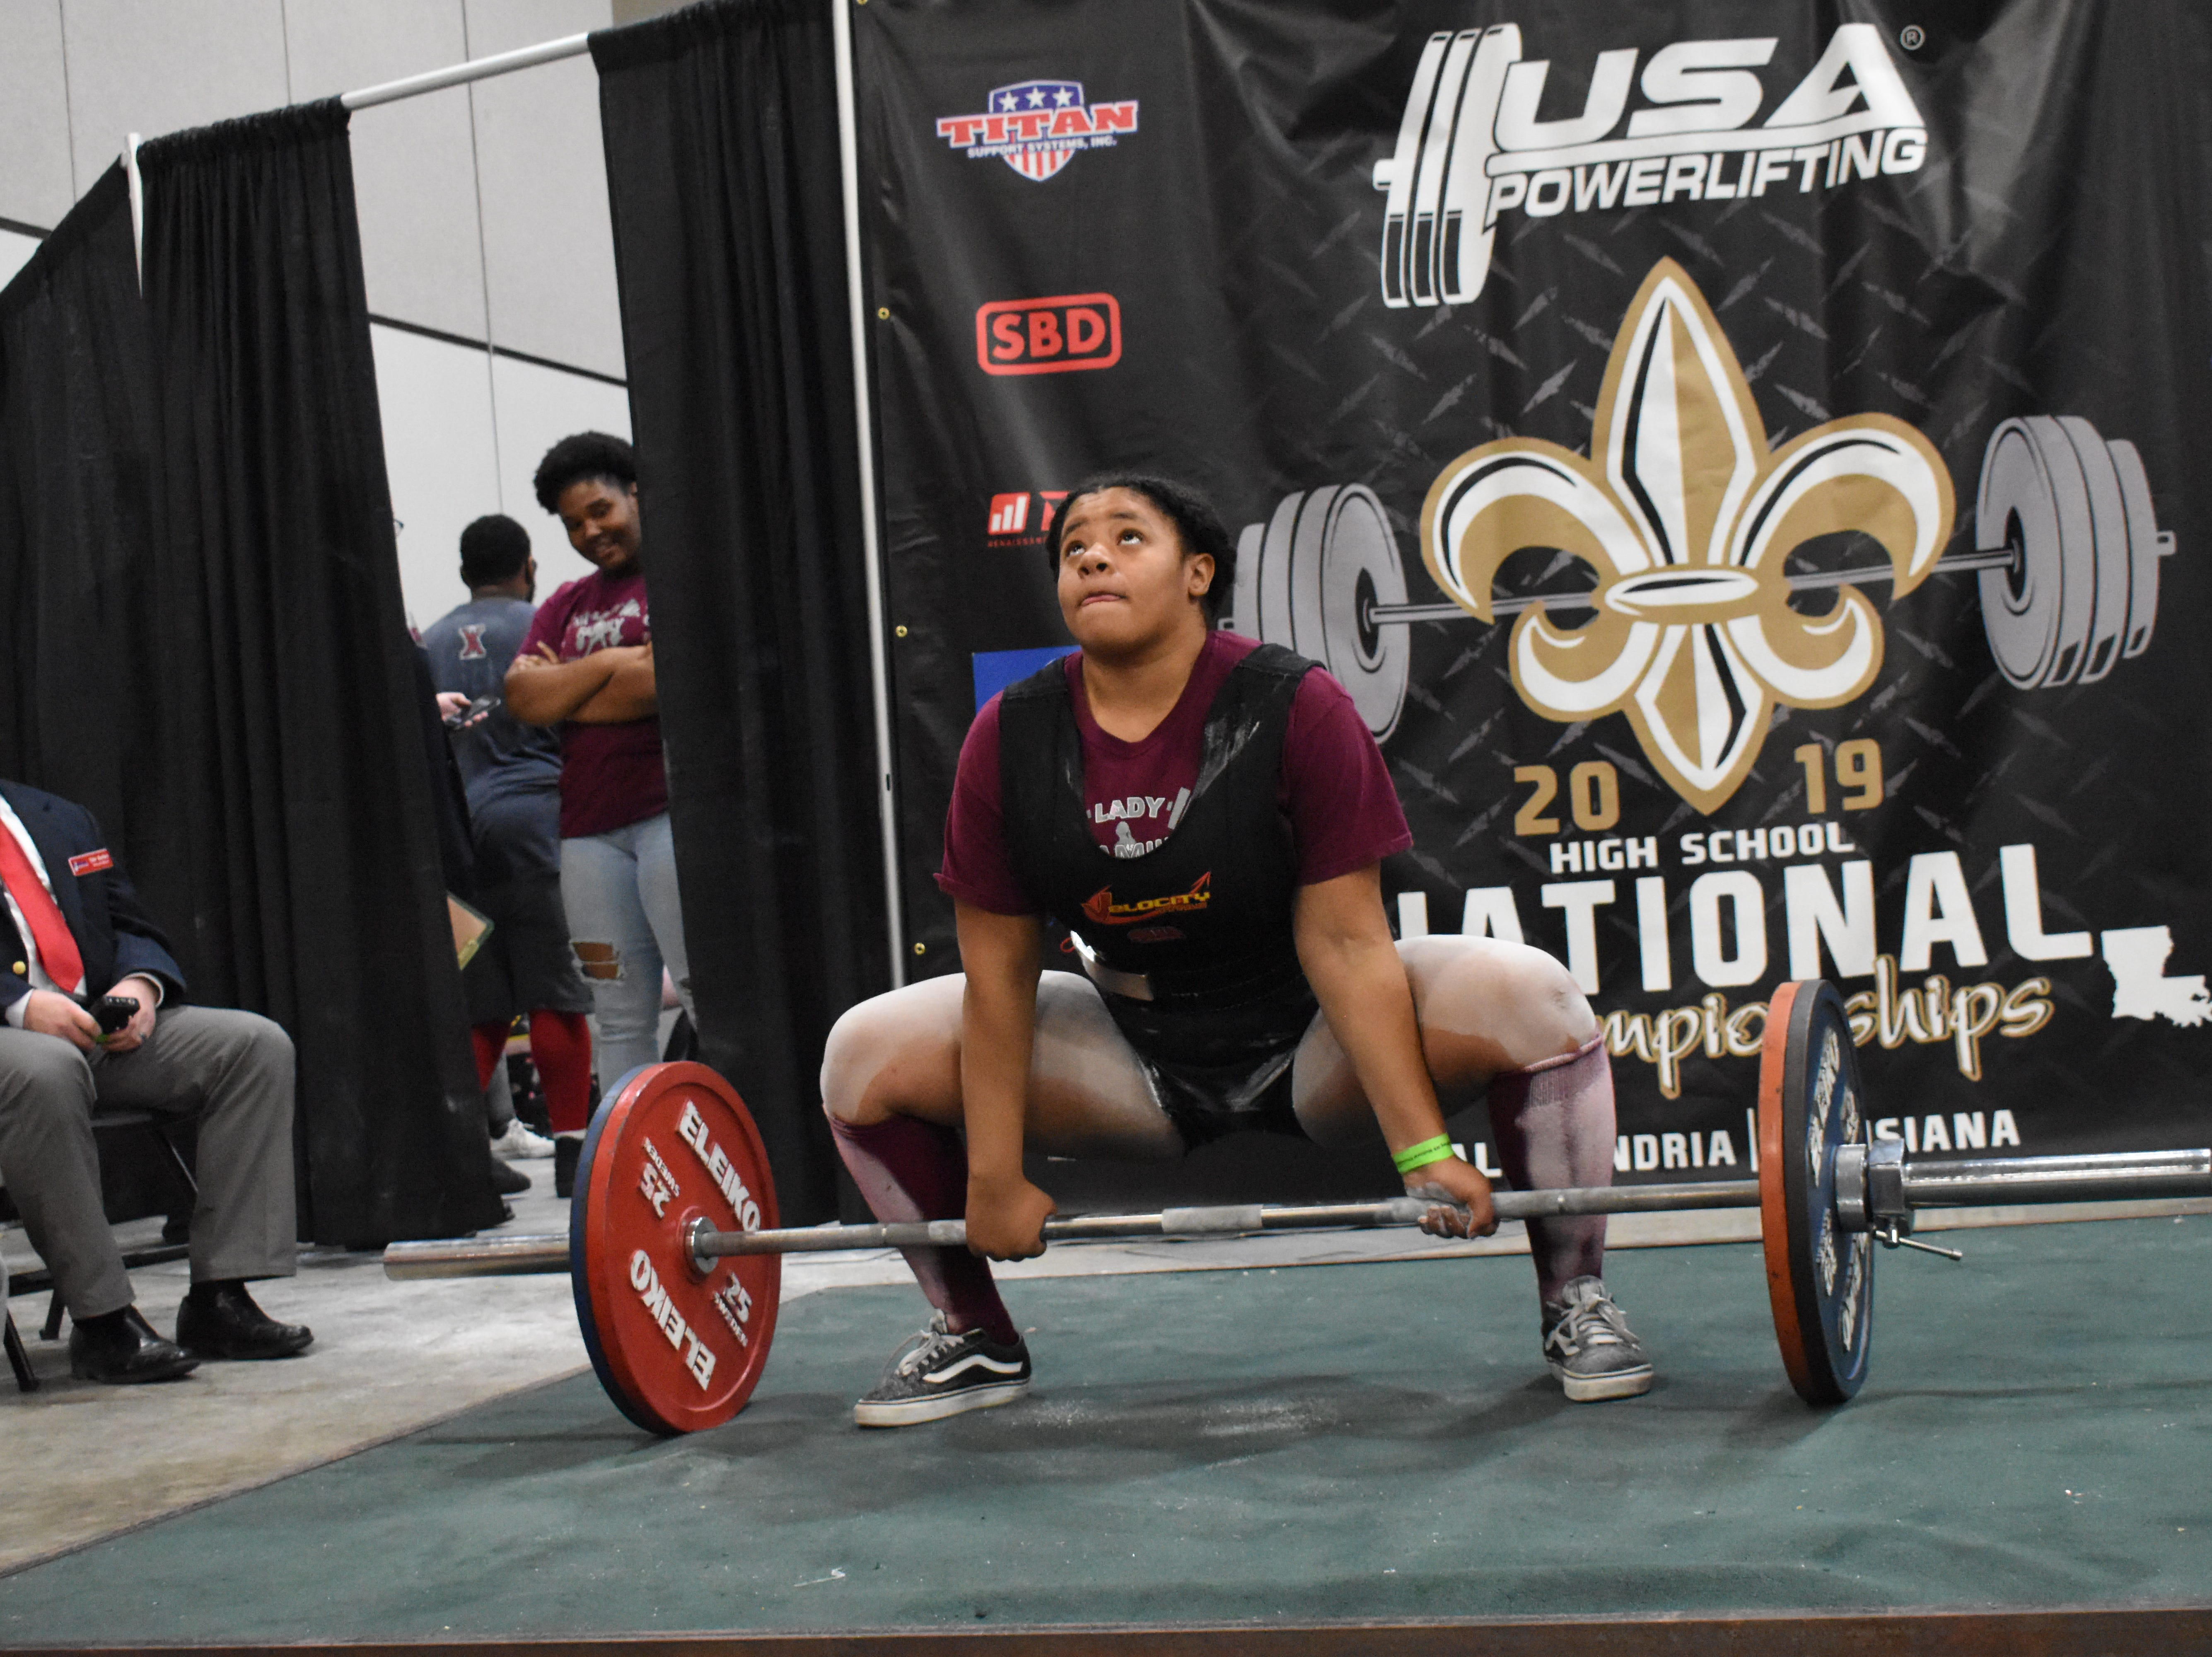 Tyreana Hughes of Pineville High School performs a deadlift in the The USA Powerlifting High School National Championships Friday, March 29, 2019. The championships, equipped and raw, are being held at the Randolph Riverfront Center in downtown Alexandria with high school powerlifters from across the country competing in the four-day event. Powerlifters from local schools are also competing.